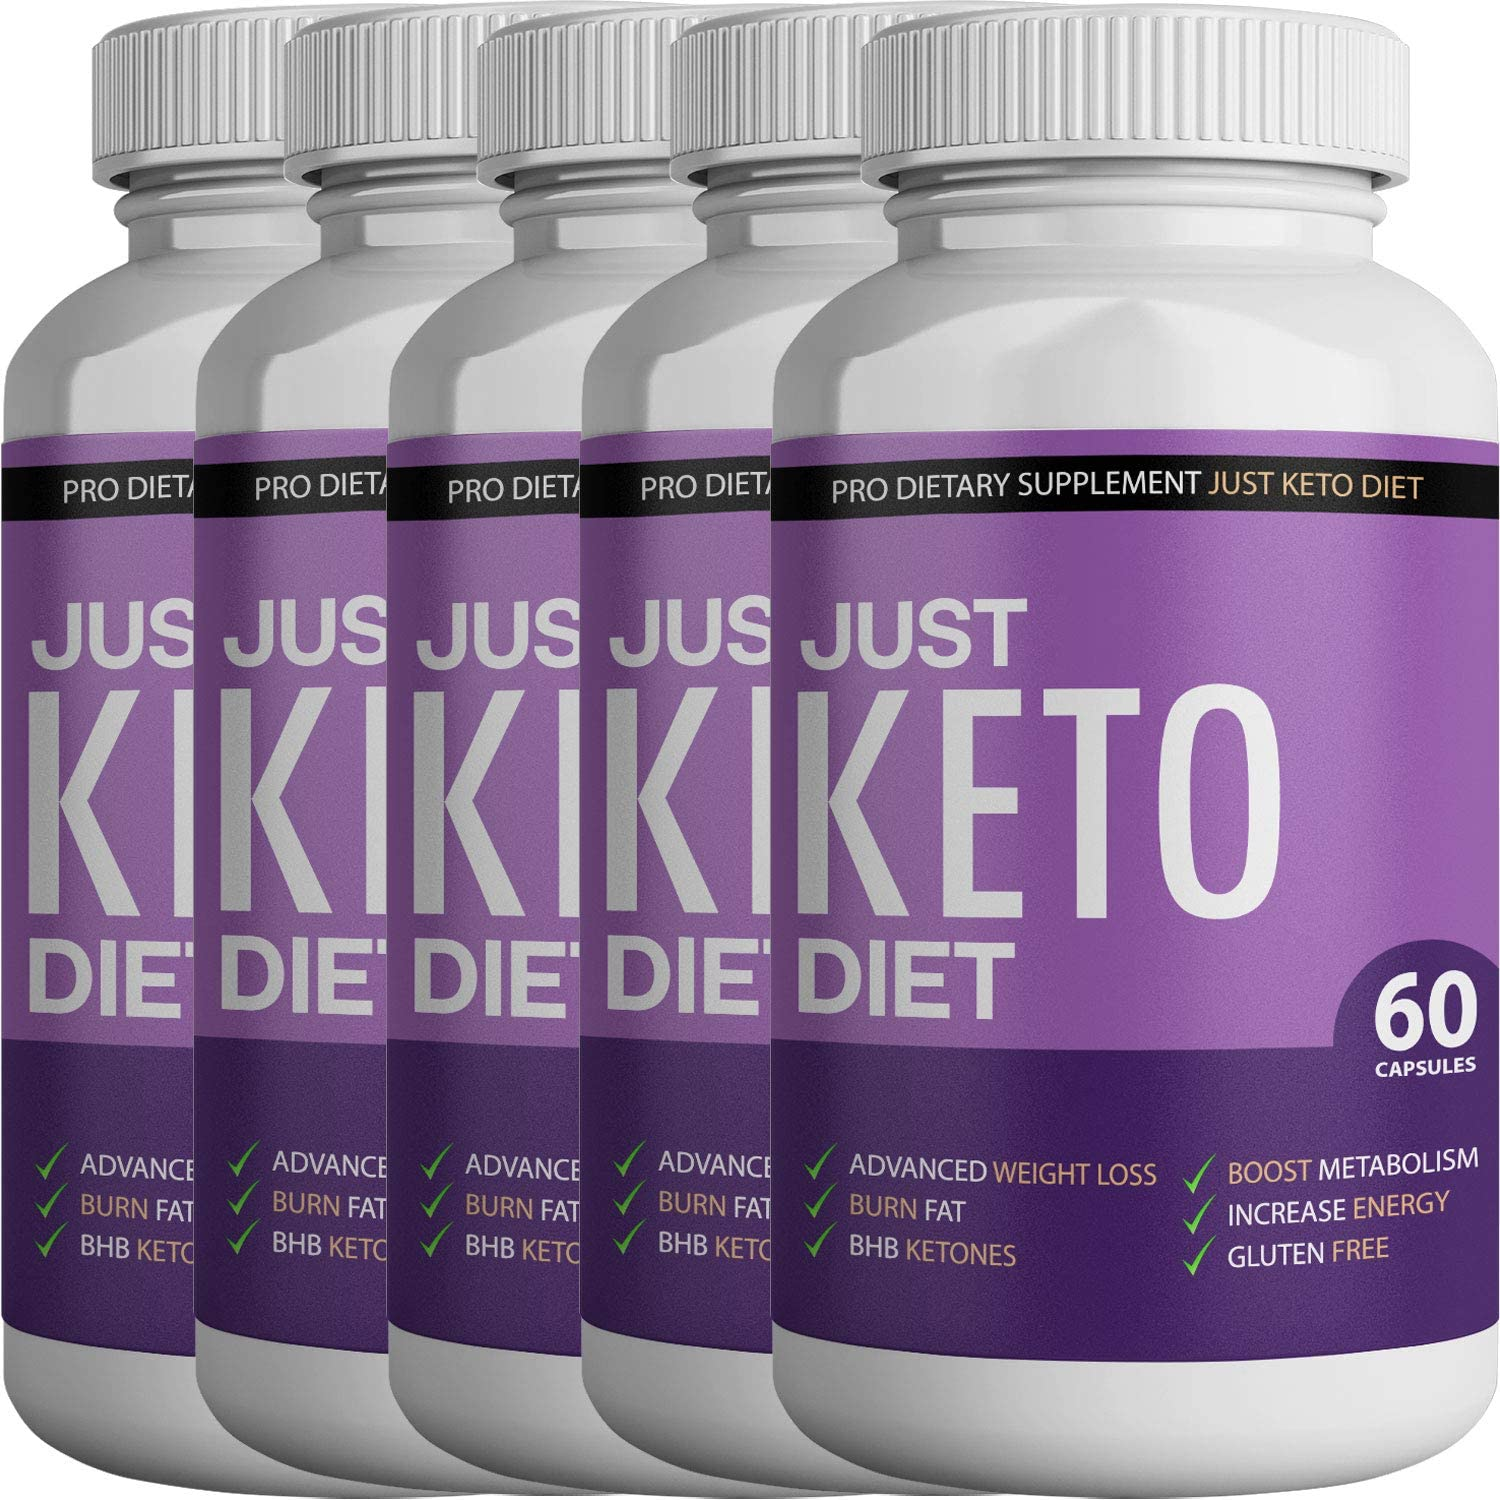 Just Keto Diet- Advanced Ketosis Weight Loss - Premium Keto Diet Pills - Burn Fat for Energy not Carbs (5 Month Supply)